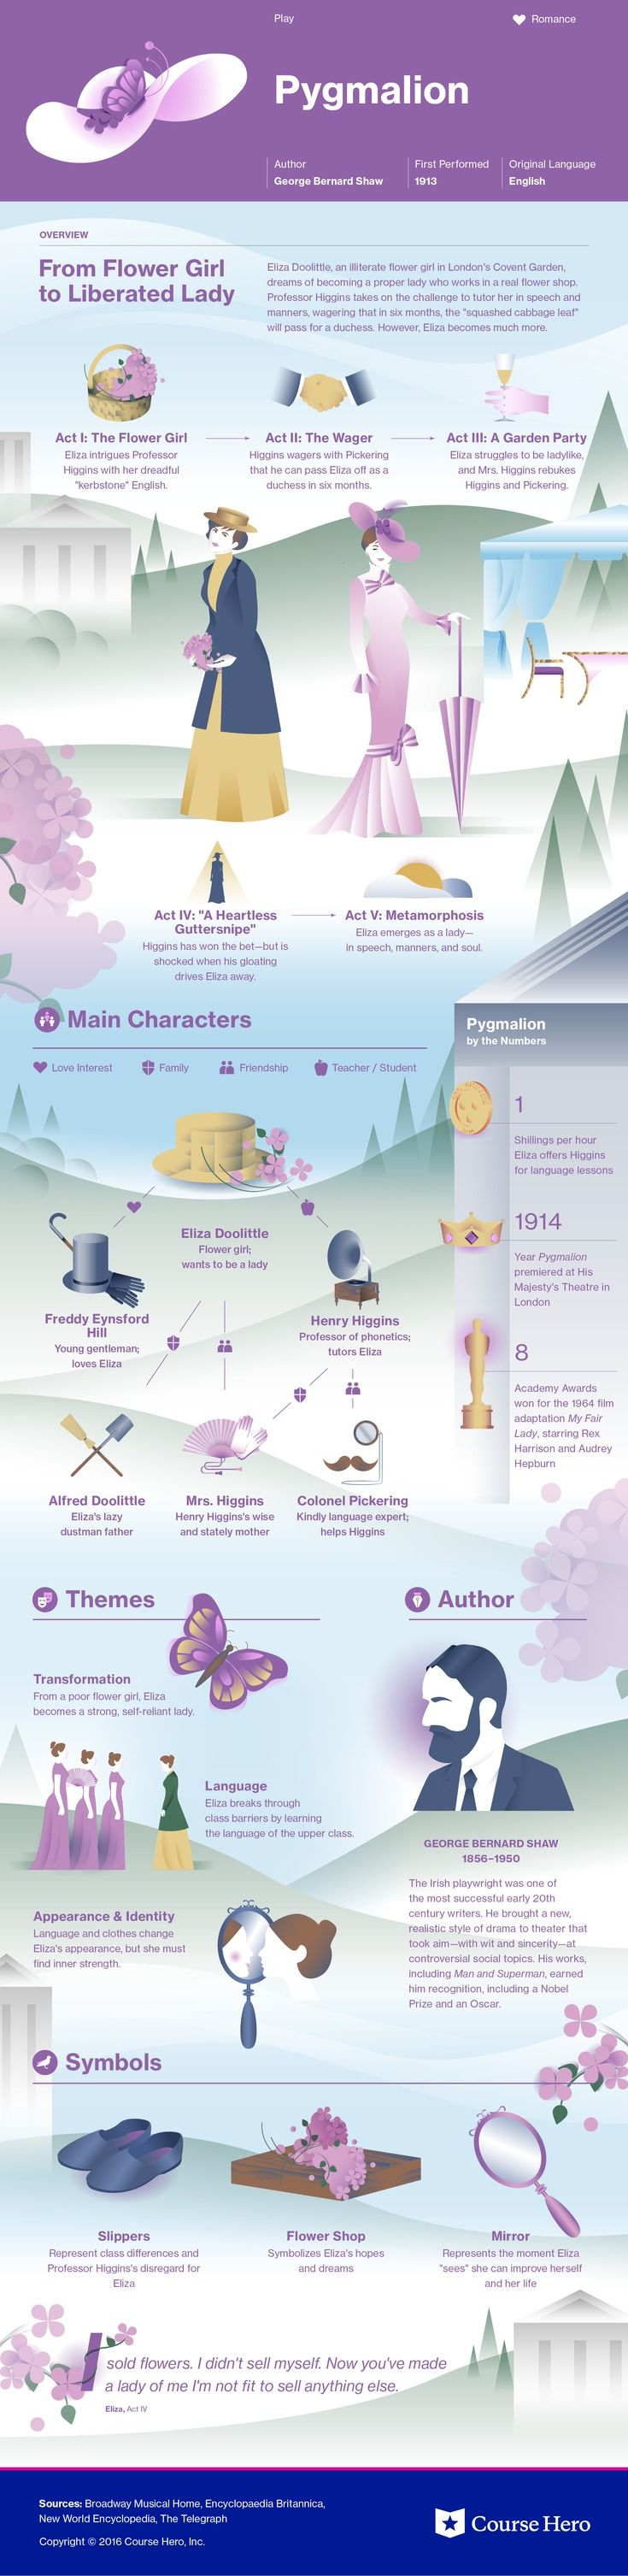 This @CourseHero infographic on Pygmalion is both visually stunning and informative!